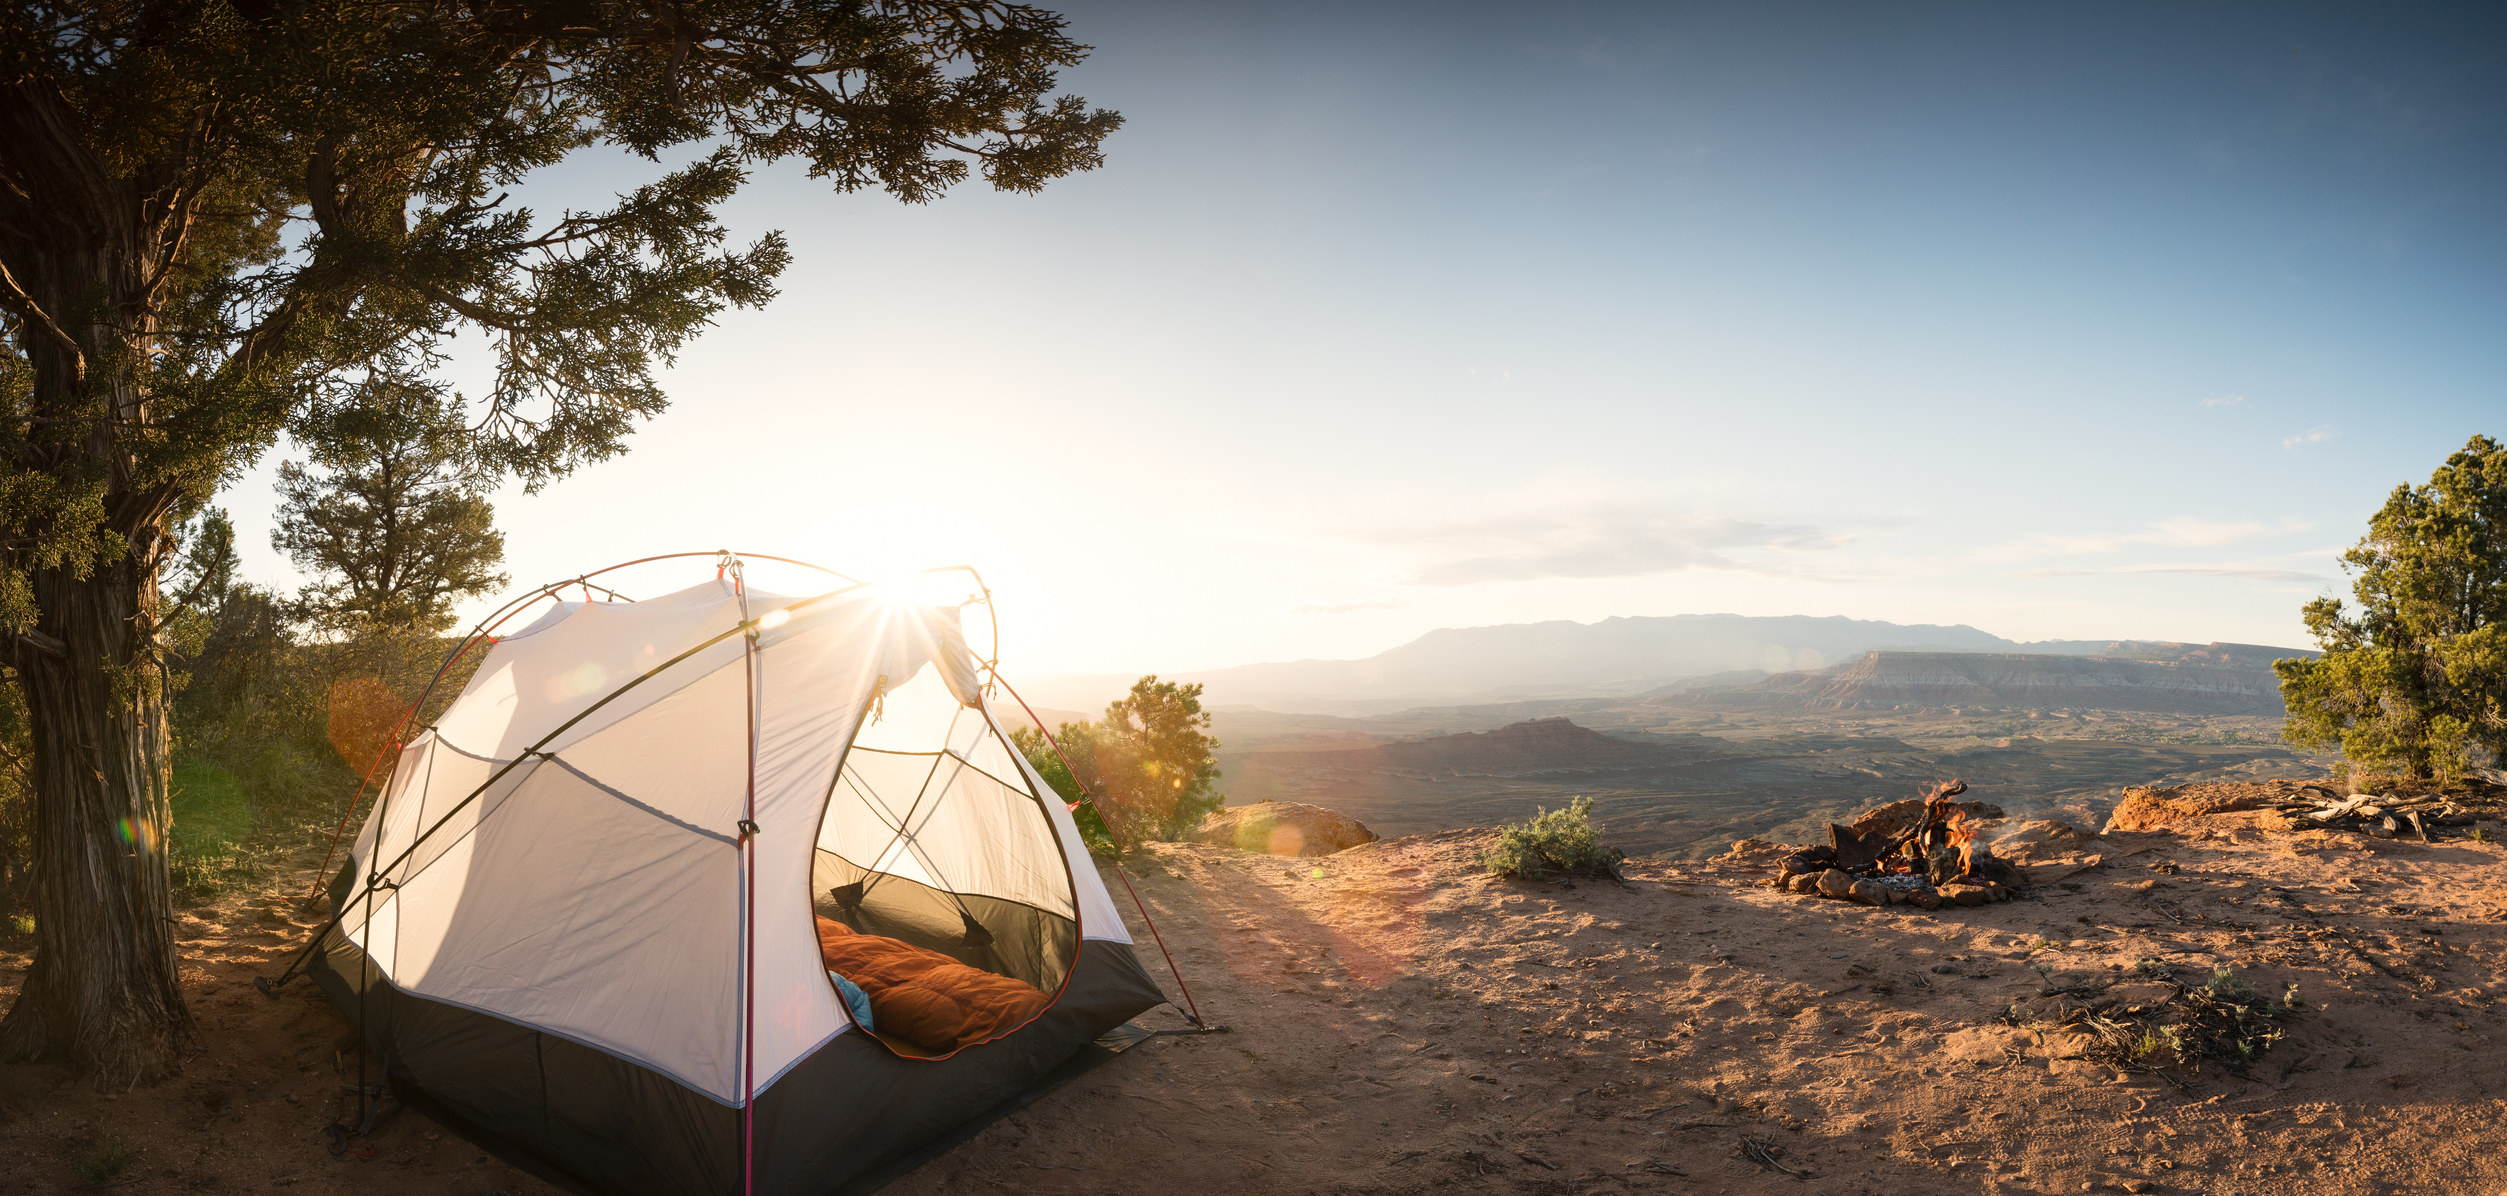 A tent in the desert.